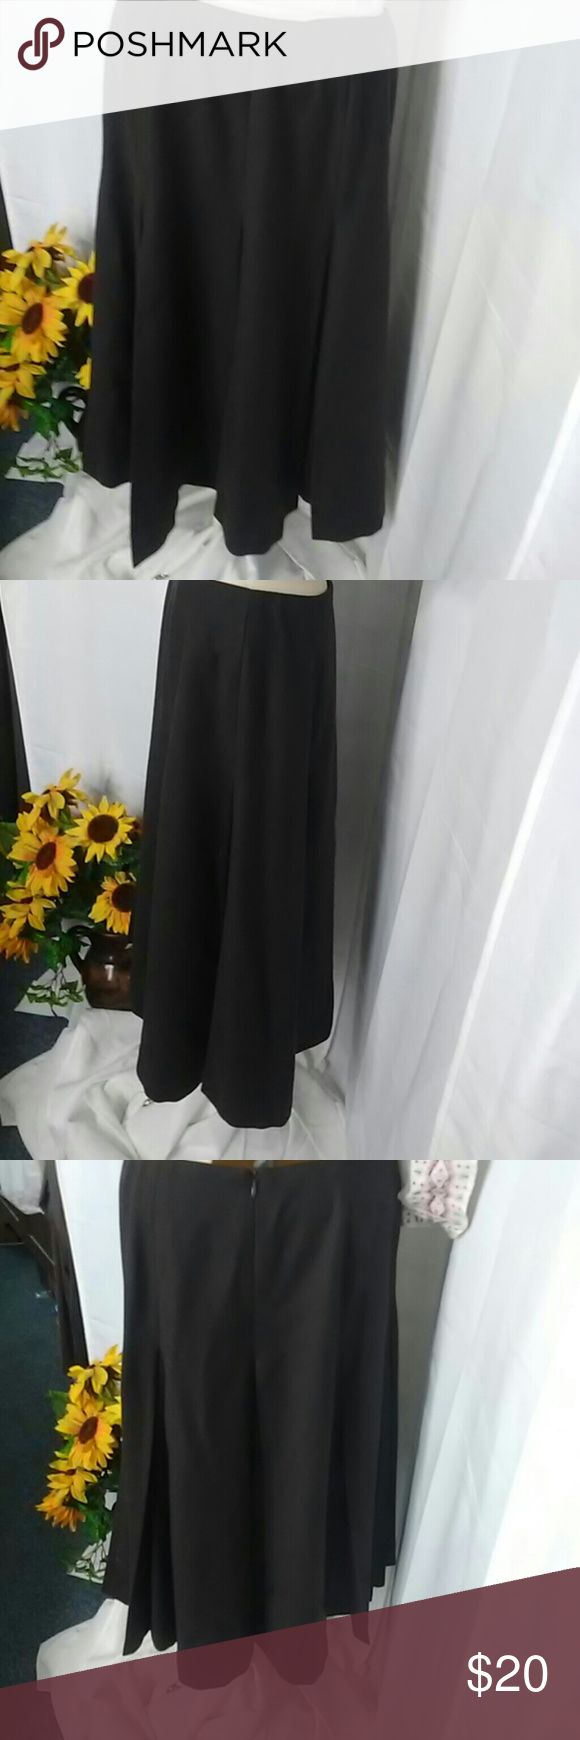 Talbot brown winter skirt Beautiful pleating starts at hip. Rich Chocolate brown color. Size 4. Talbots Skirts Midi